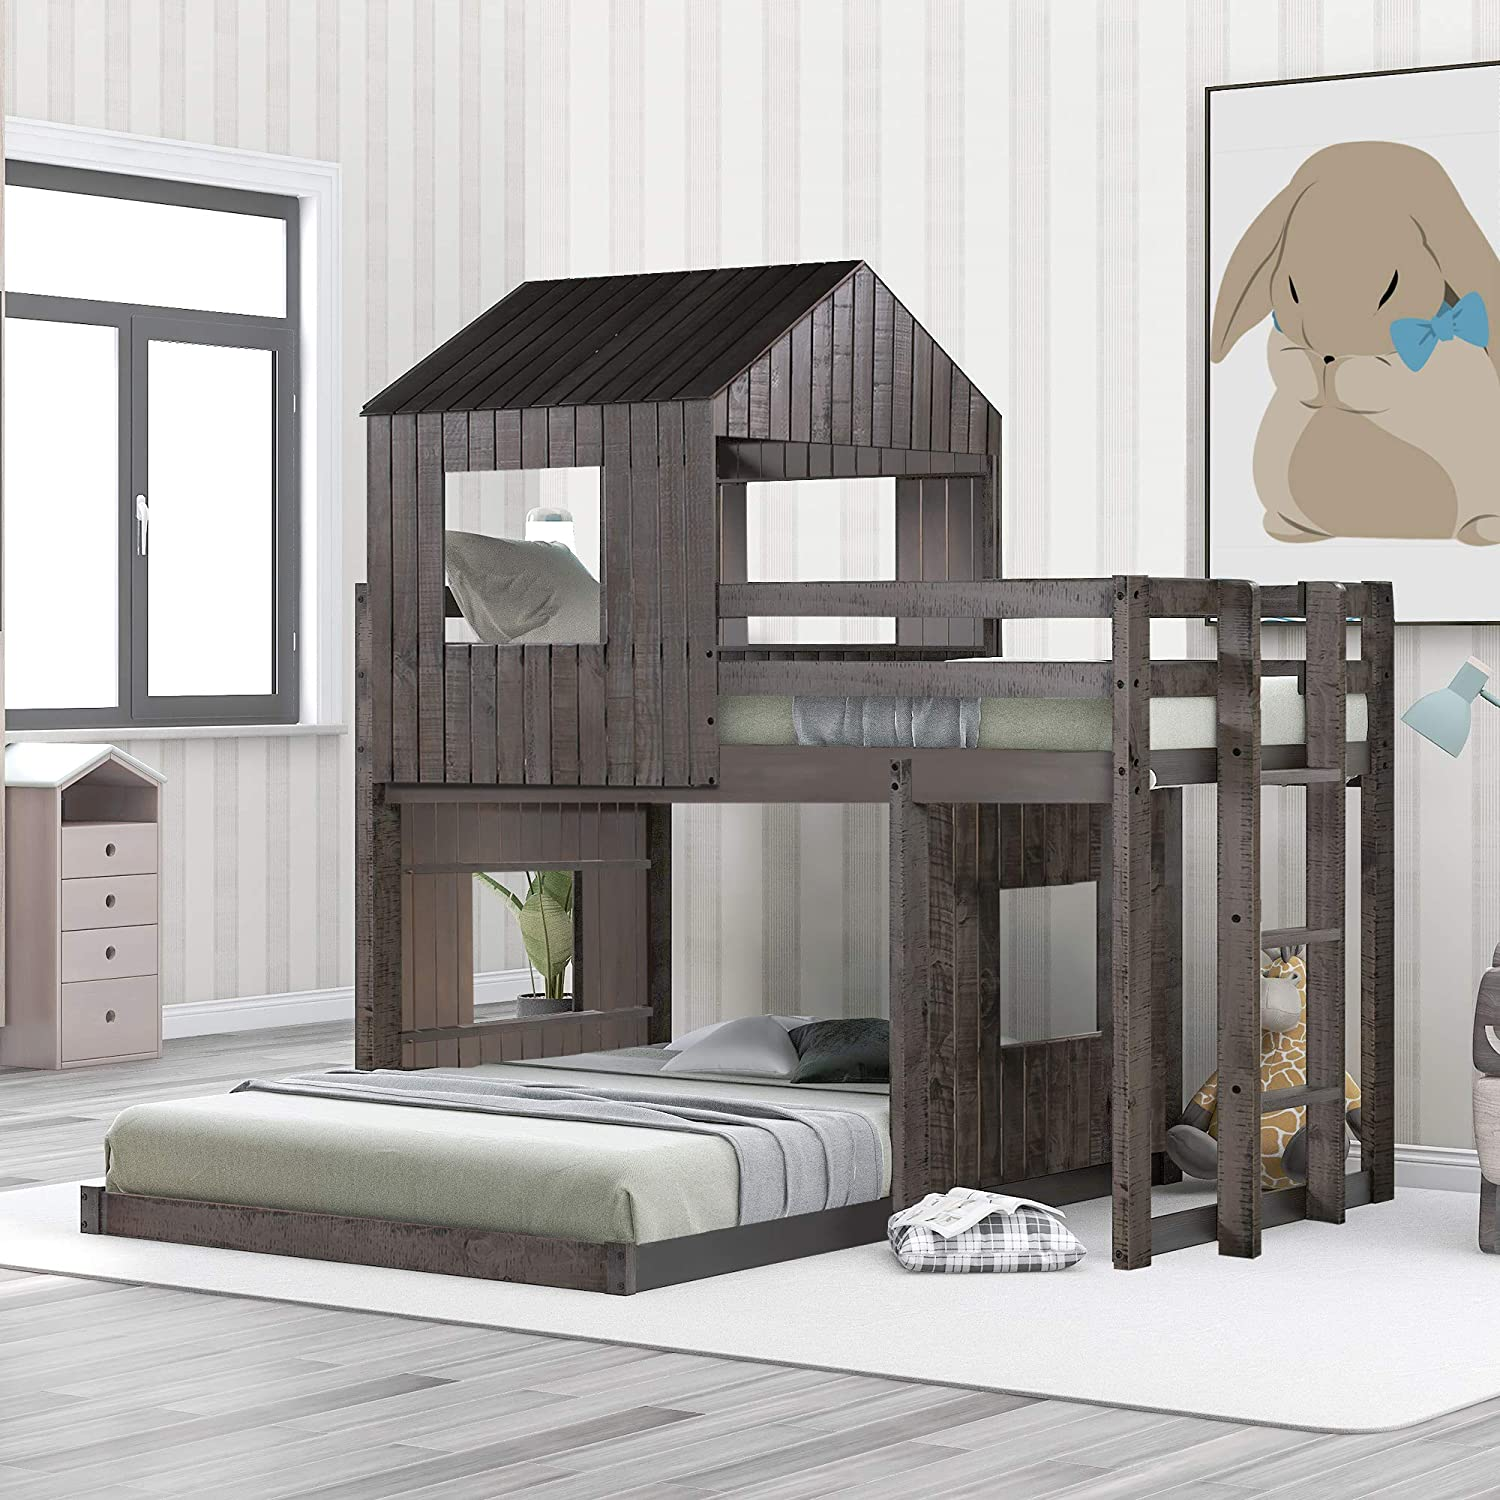 Polibi Twin Over shipfree Full Wooden with Loft Bed Bunk Max 82% OFF Playhouse